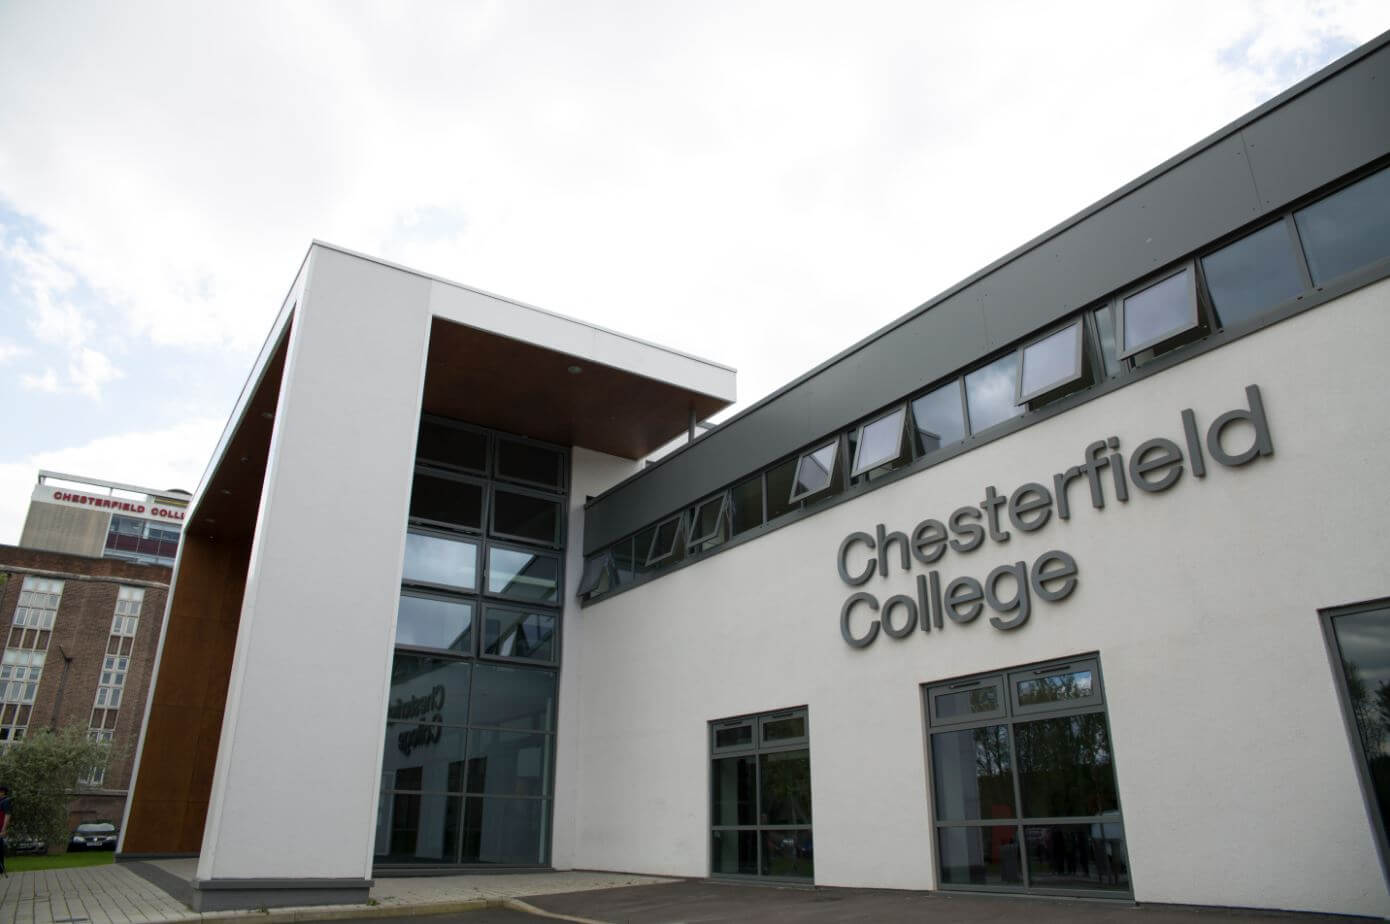 Outside view of Chesterfield College